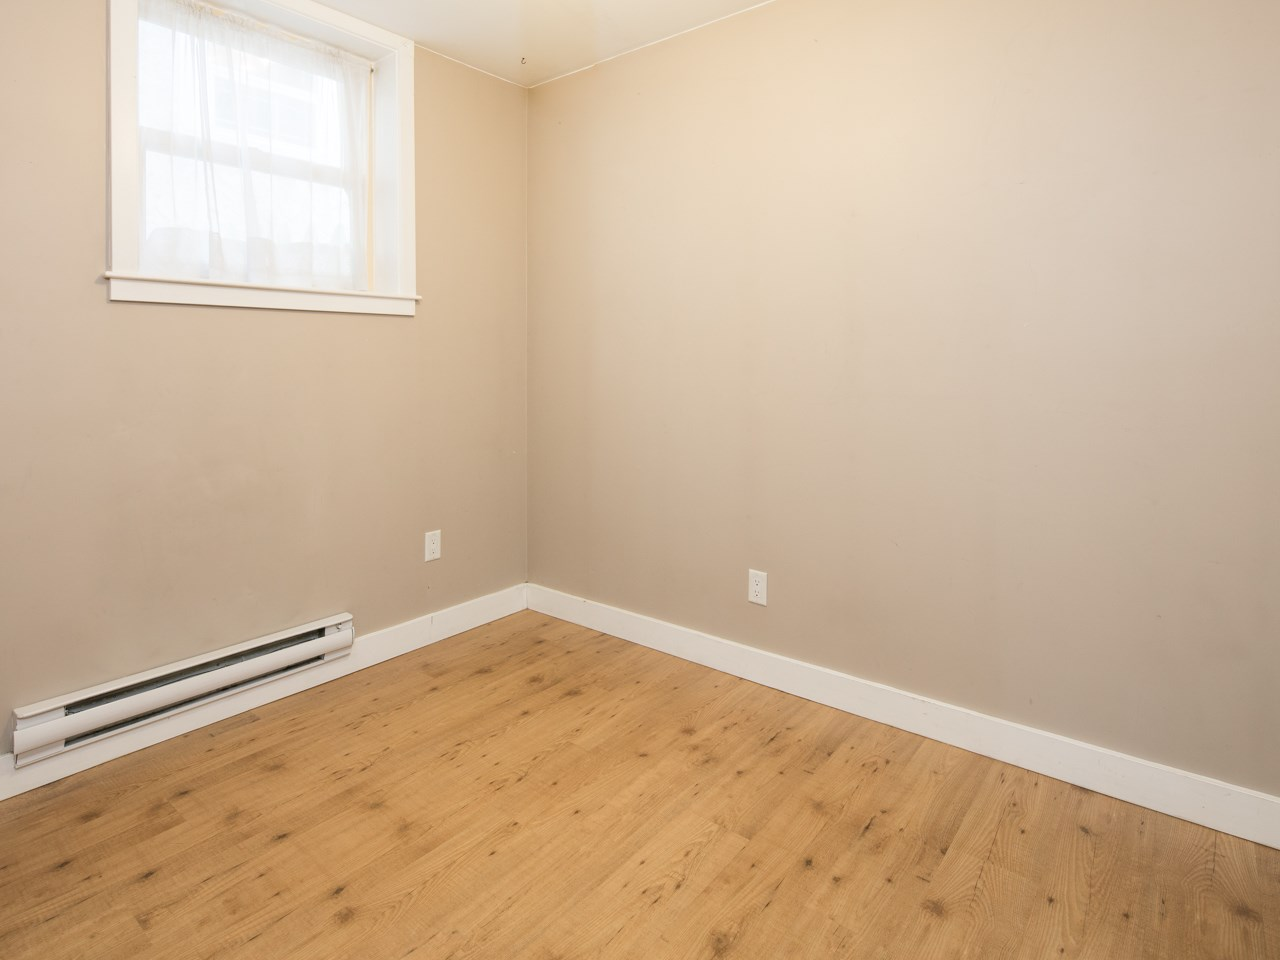 Photo 17: 845 PRINCESS Avenue in Vancouver: Mount Pleasant VE House for sale (Vancouver East)  : MLS(r) # R2113640